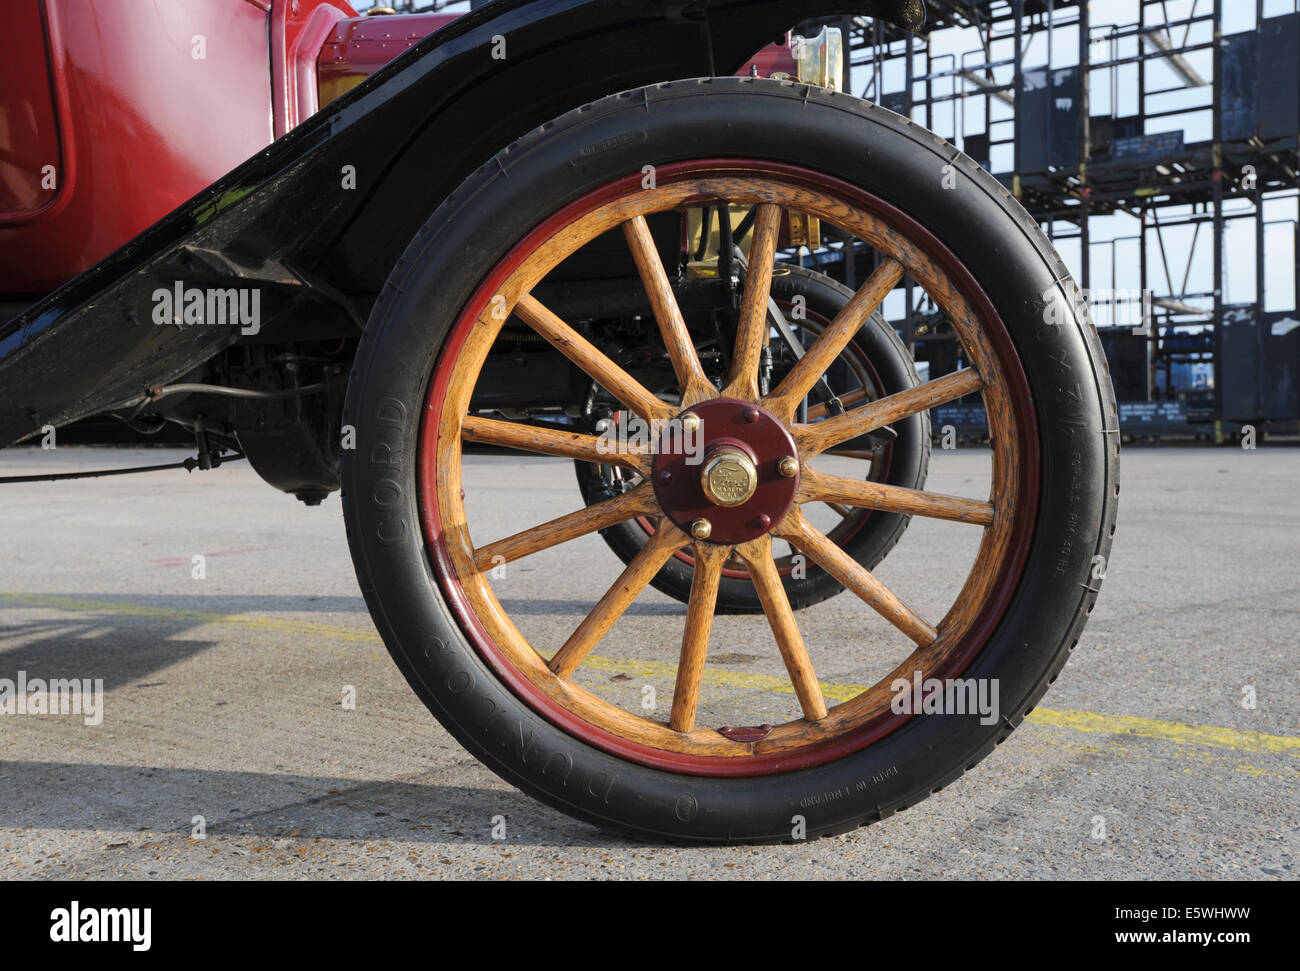 Ford model t vintage car early motoring wooden spoked wheel stock image